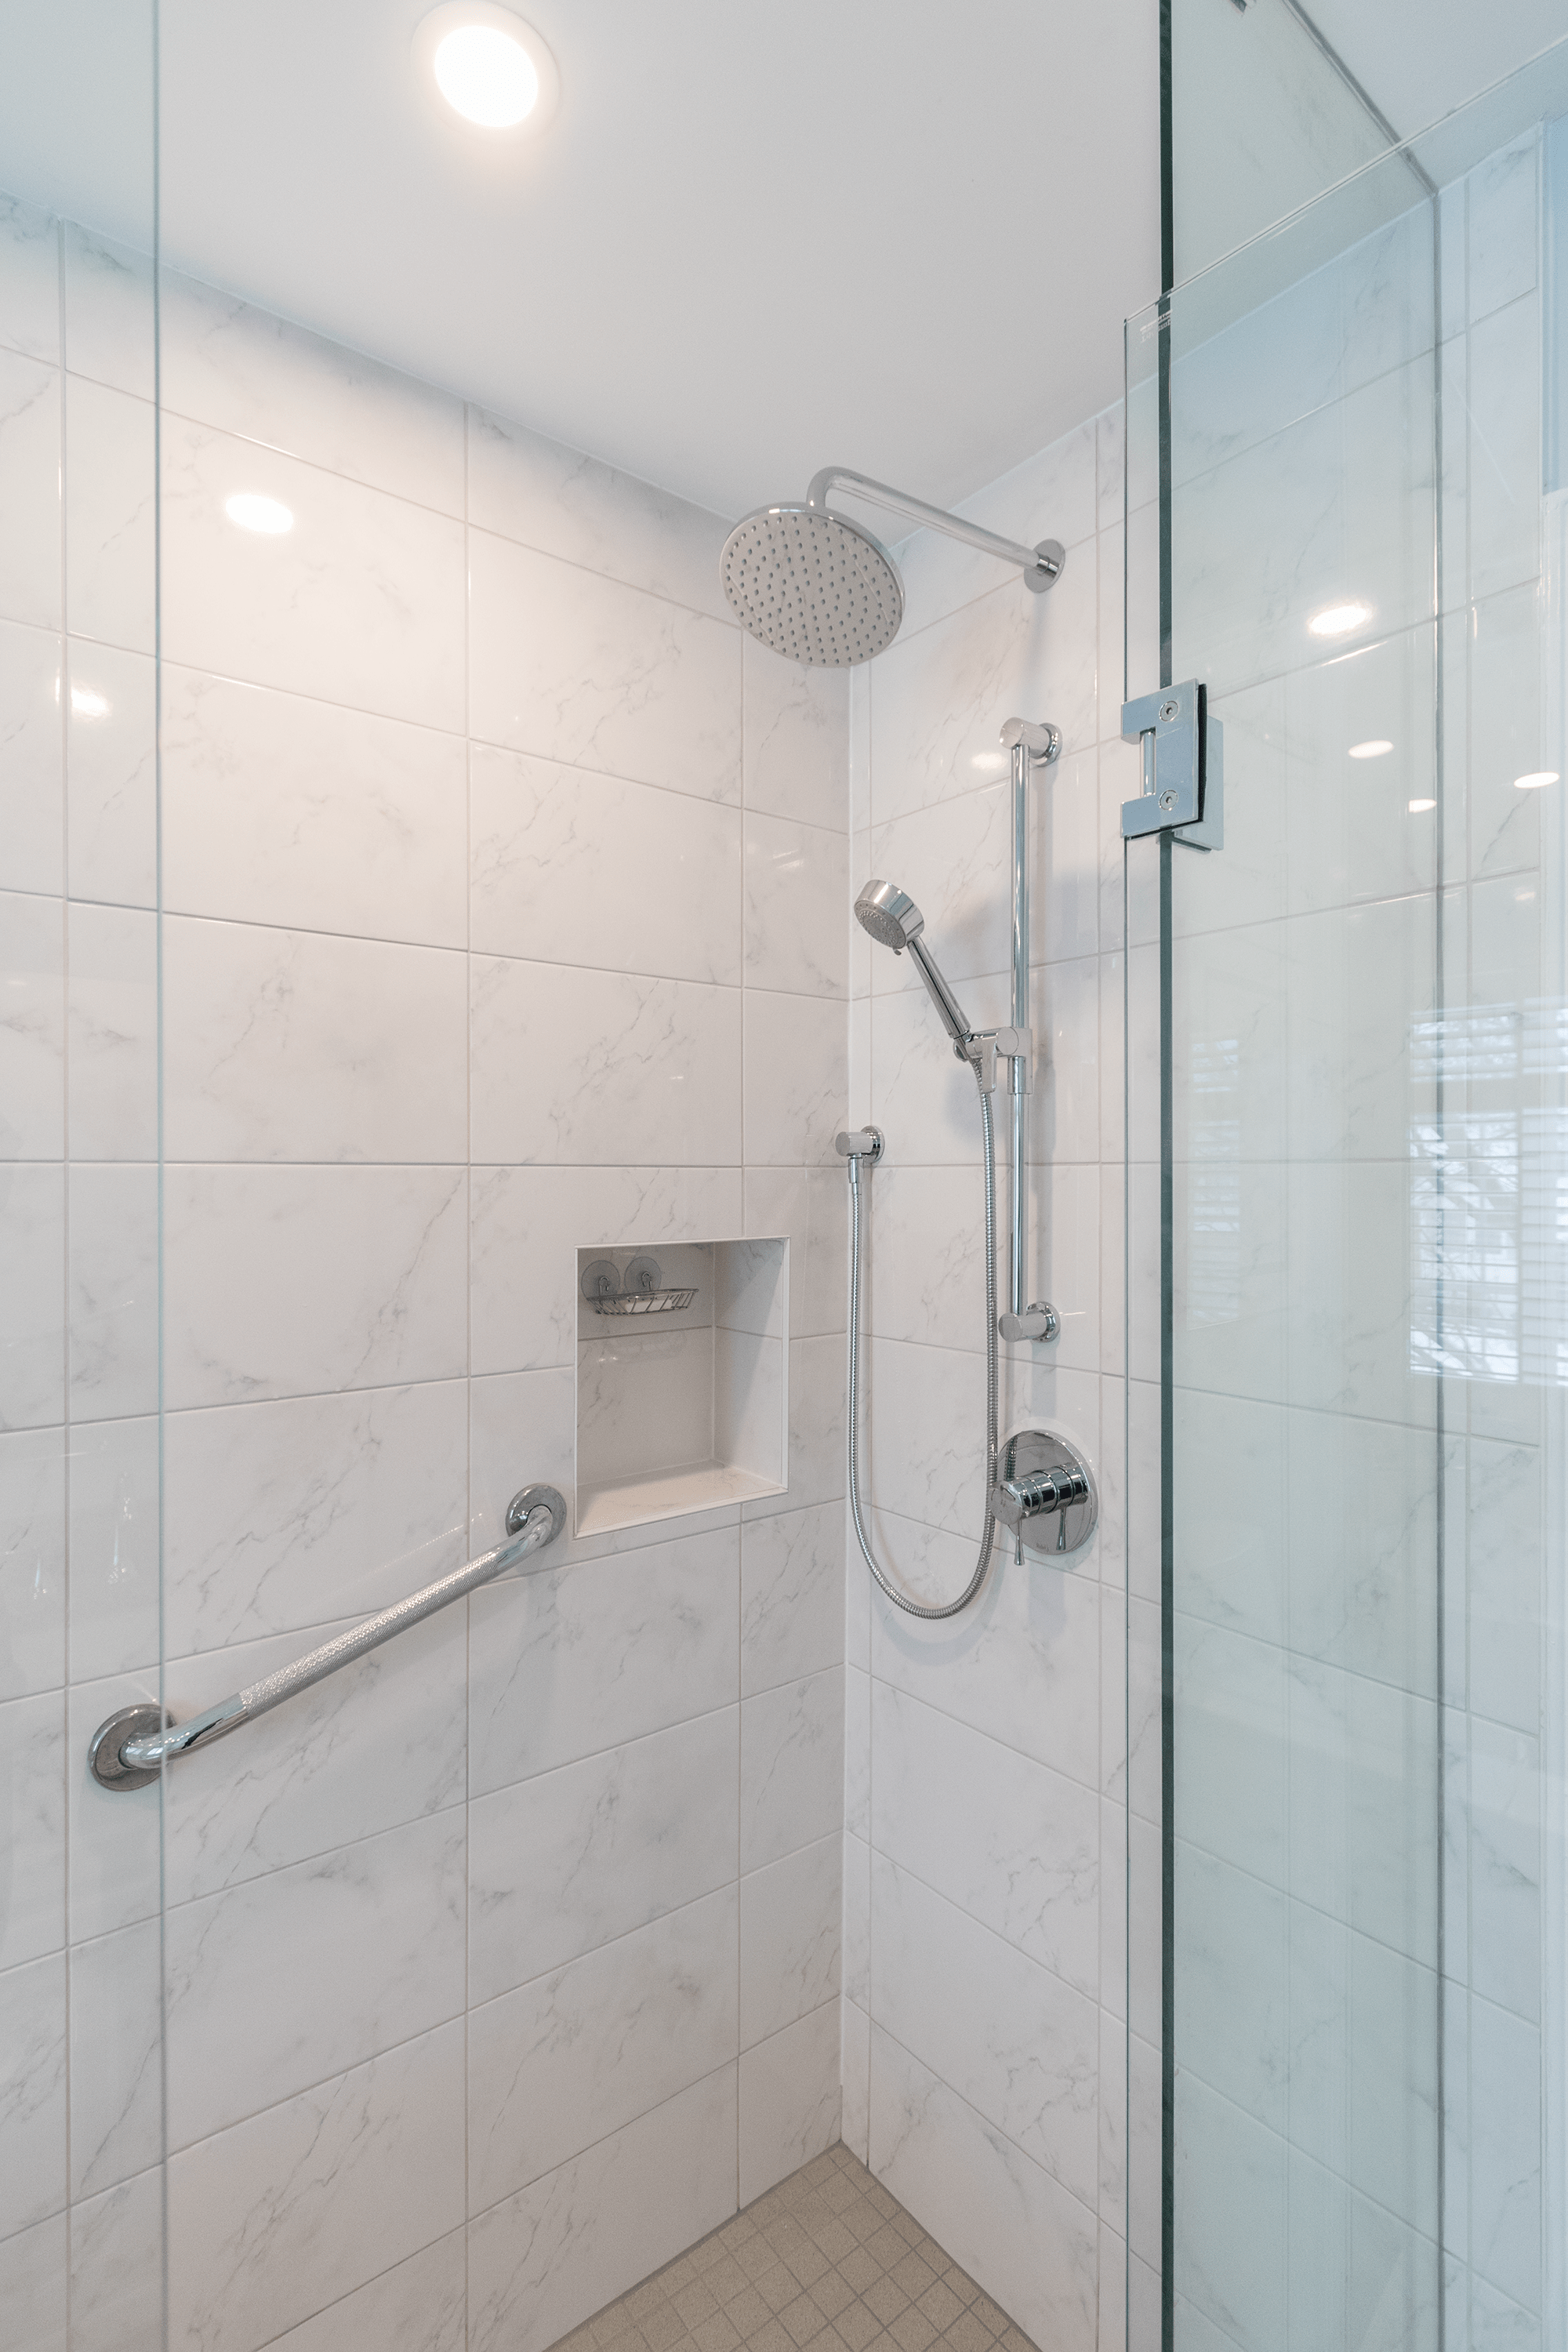 converting your tub to a walk in shower